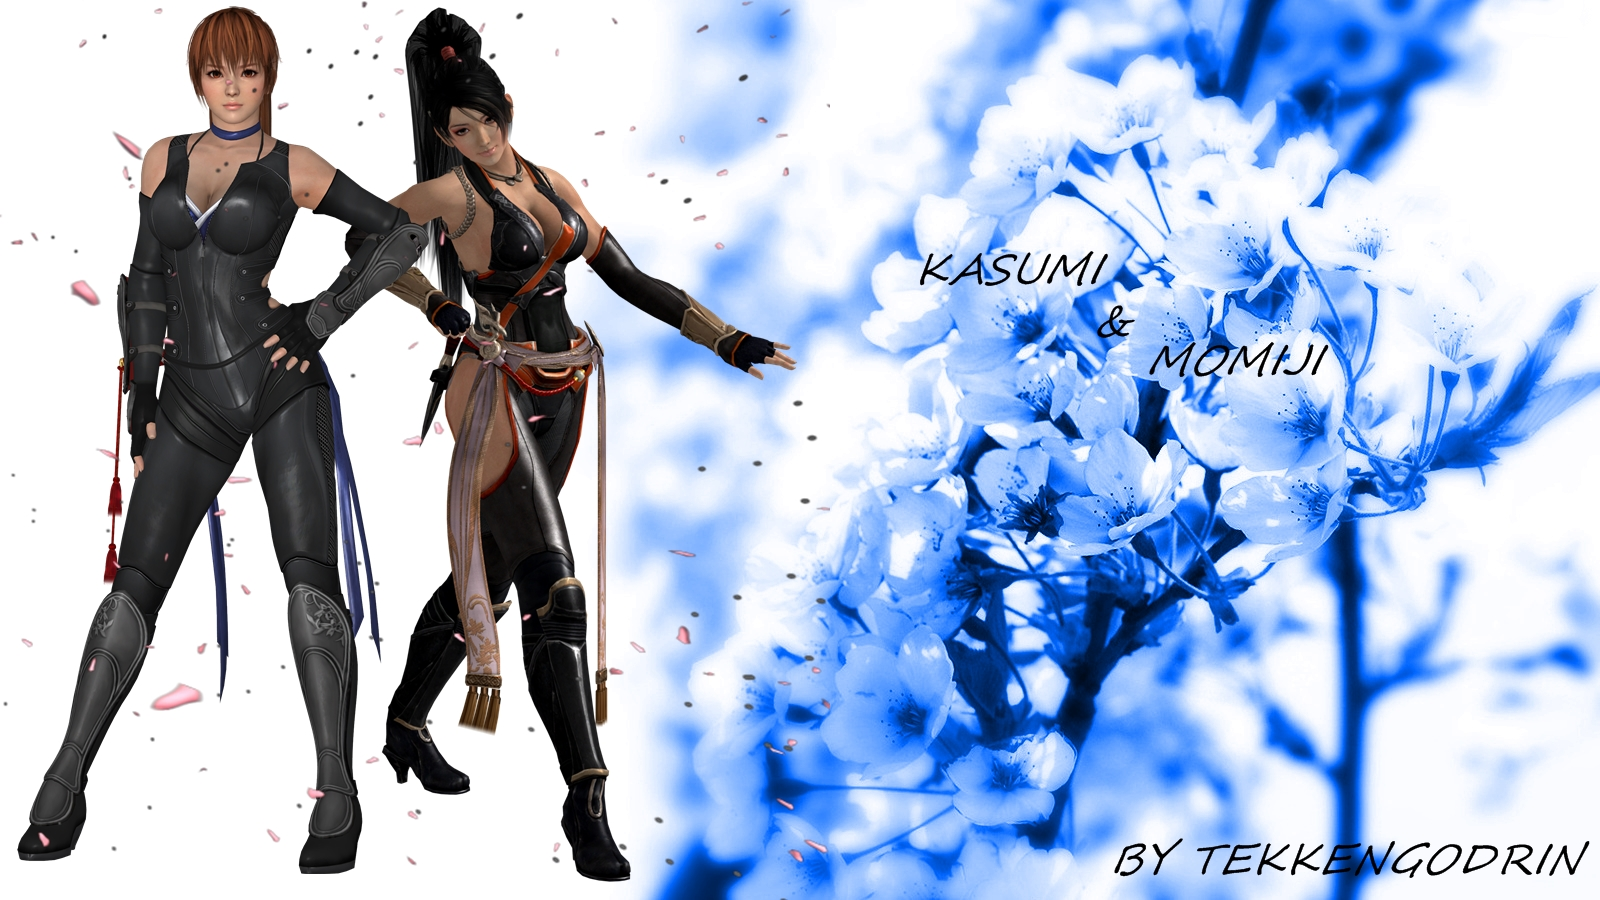 Dead Or Alive 5 Kasumi and Momiji Wallpaper by TekkenGodRin on 1600x900